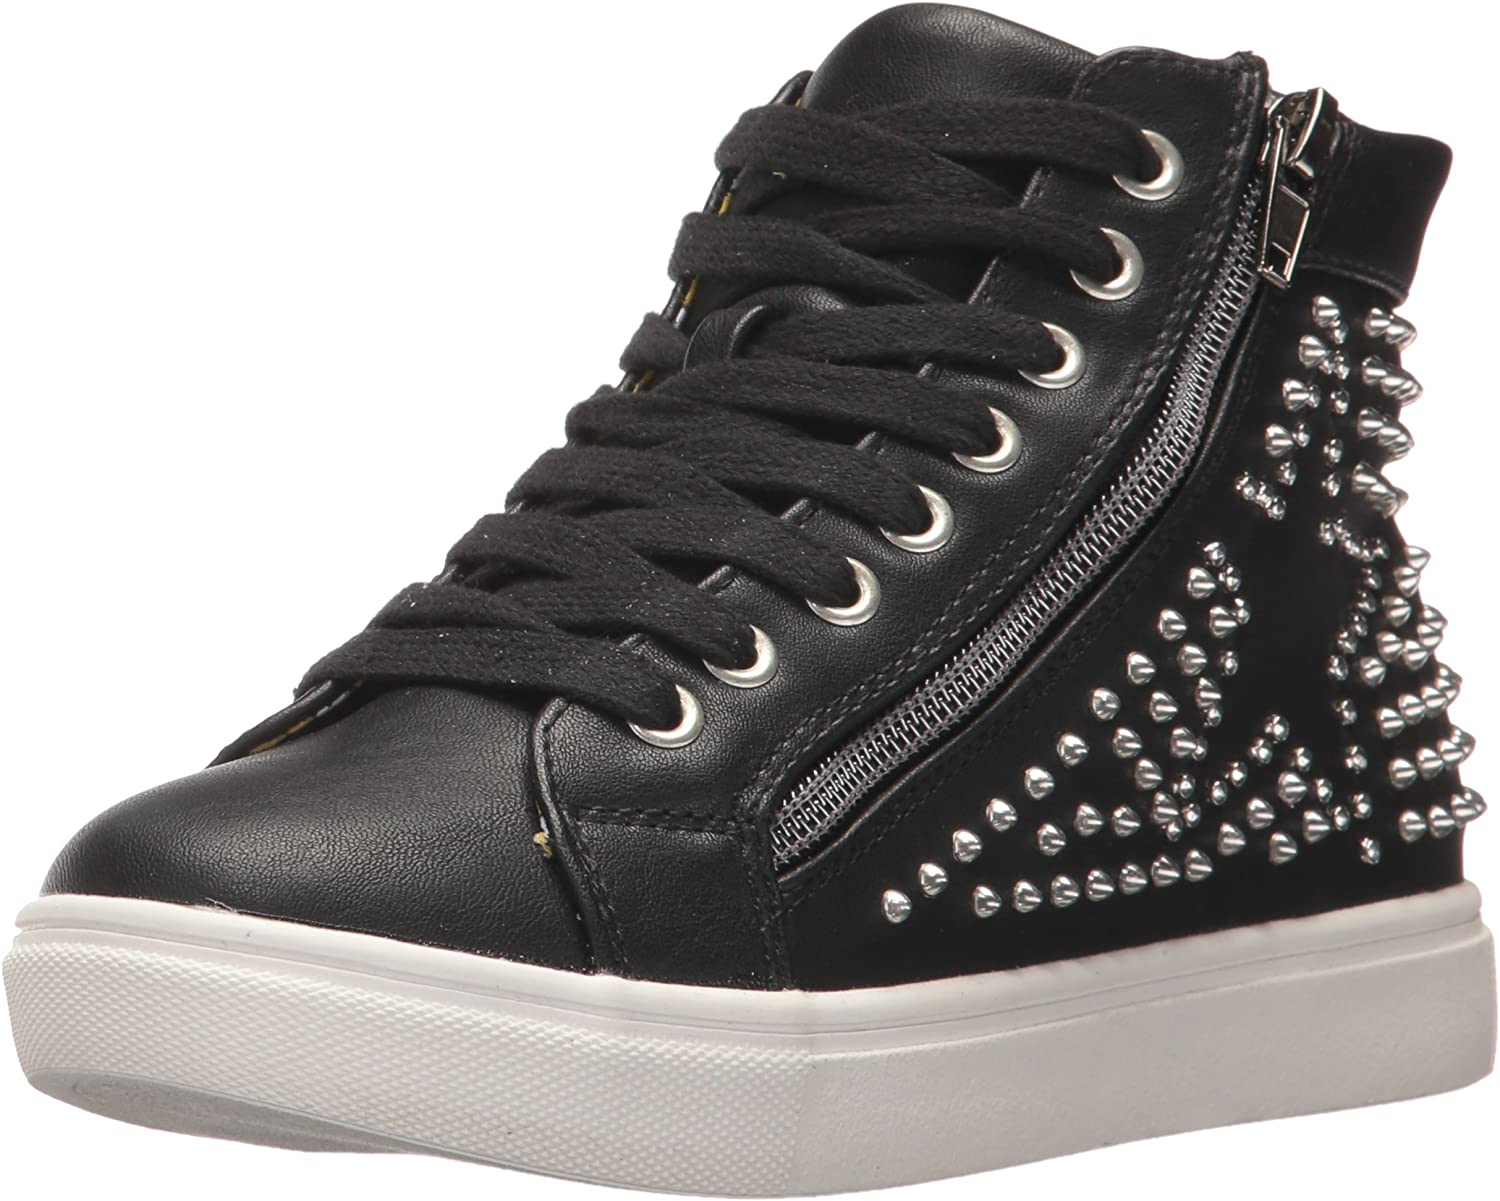 Steve Madden Quantity limited Unisex-Child Sneaker Don't miss the campaign Jrebel